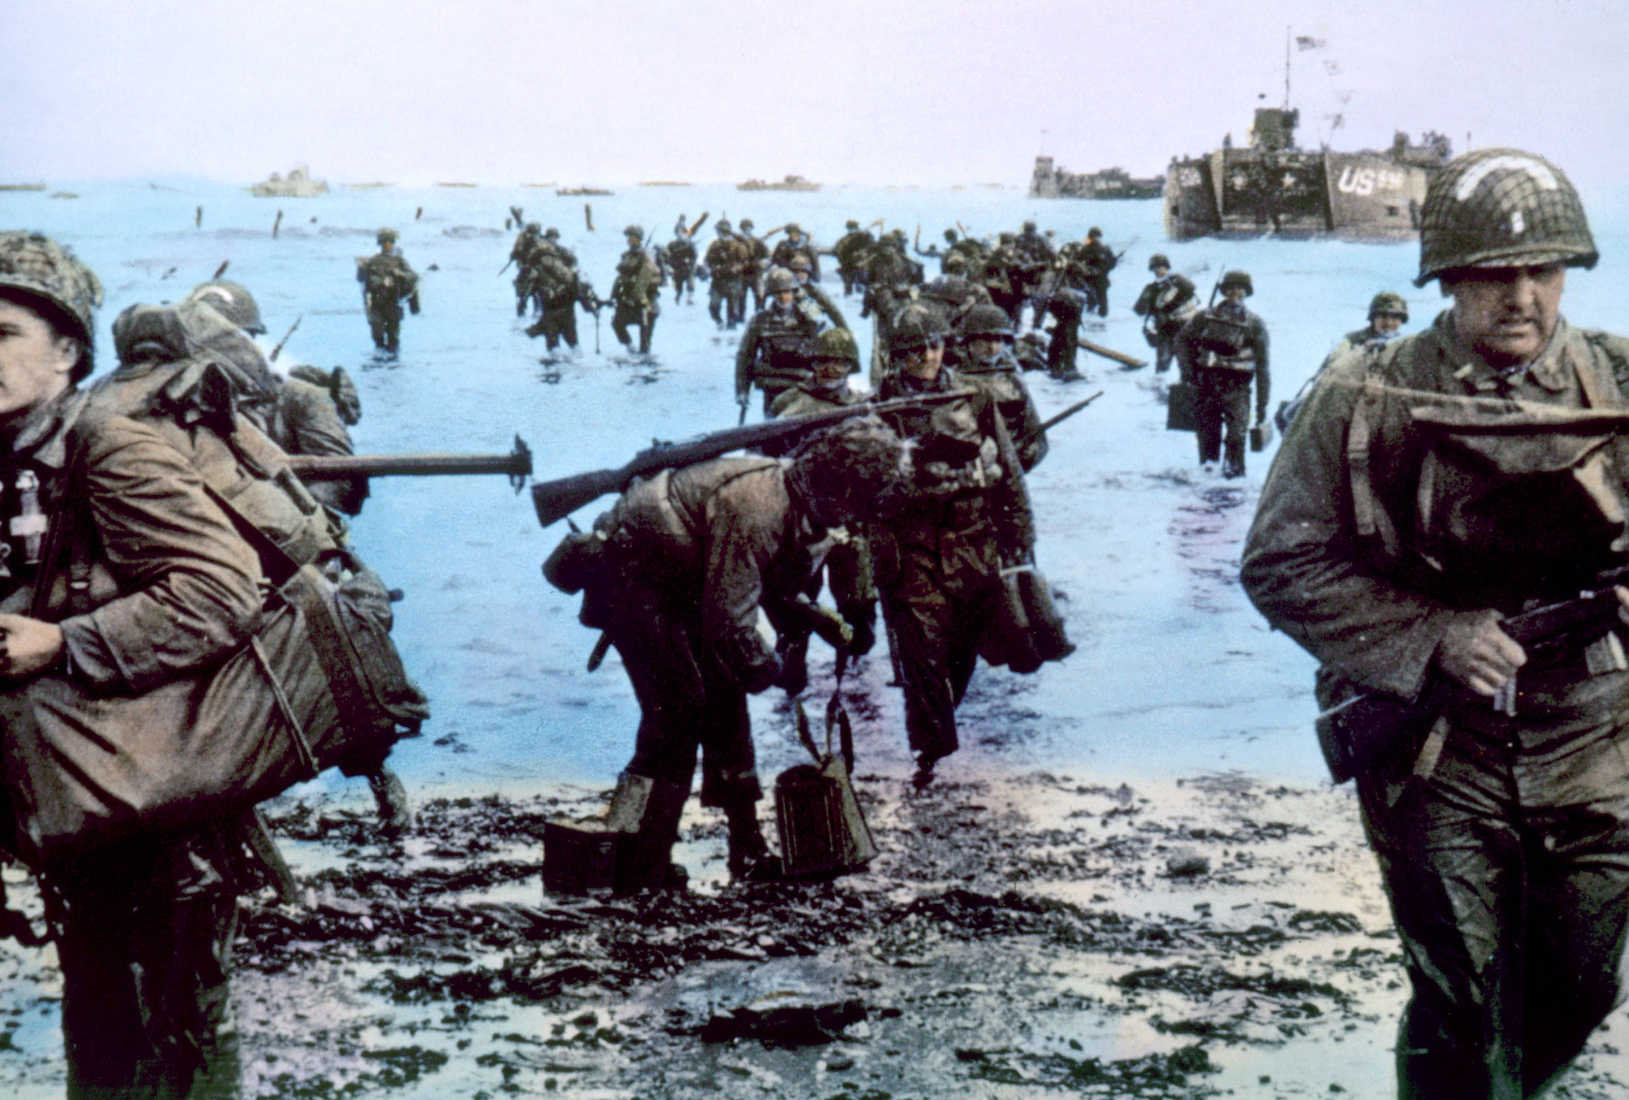 Operation Overlord 75 Years Later – Remembering D-Day and the Weapons Used